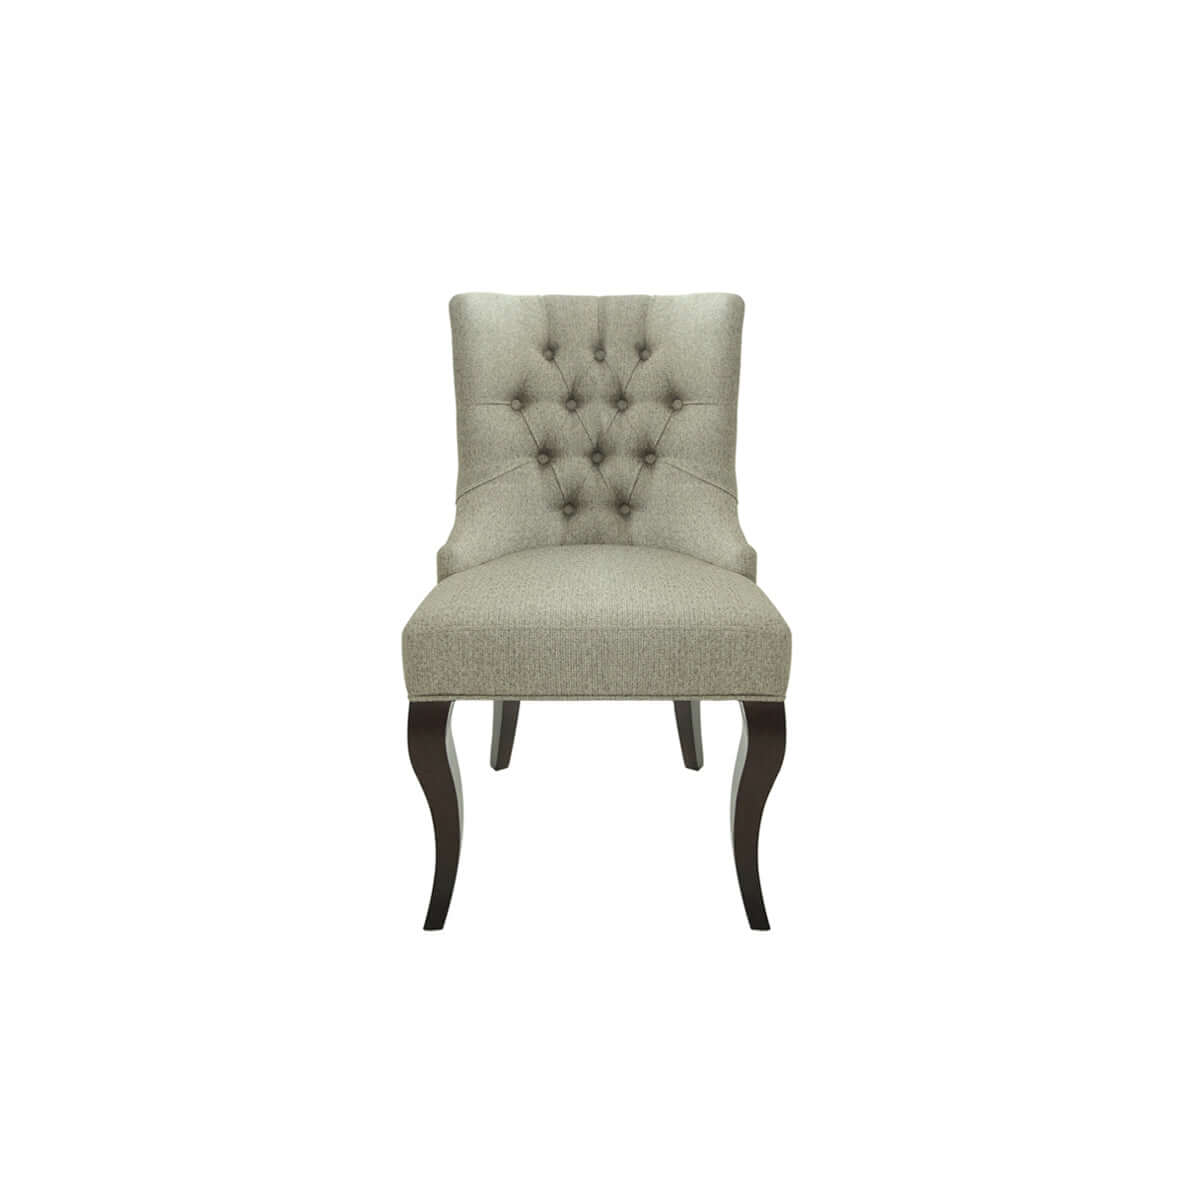 wingback dining chair with glossy curved legs, made in indonesia